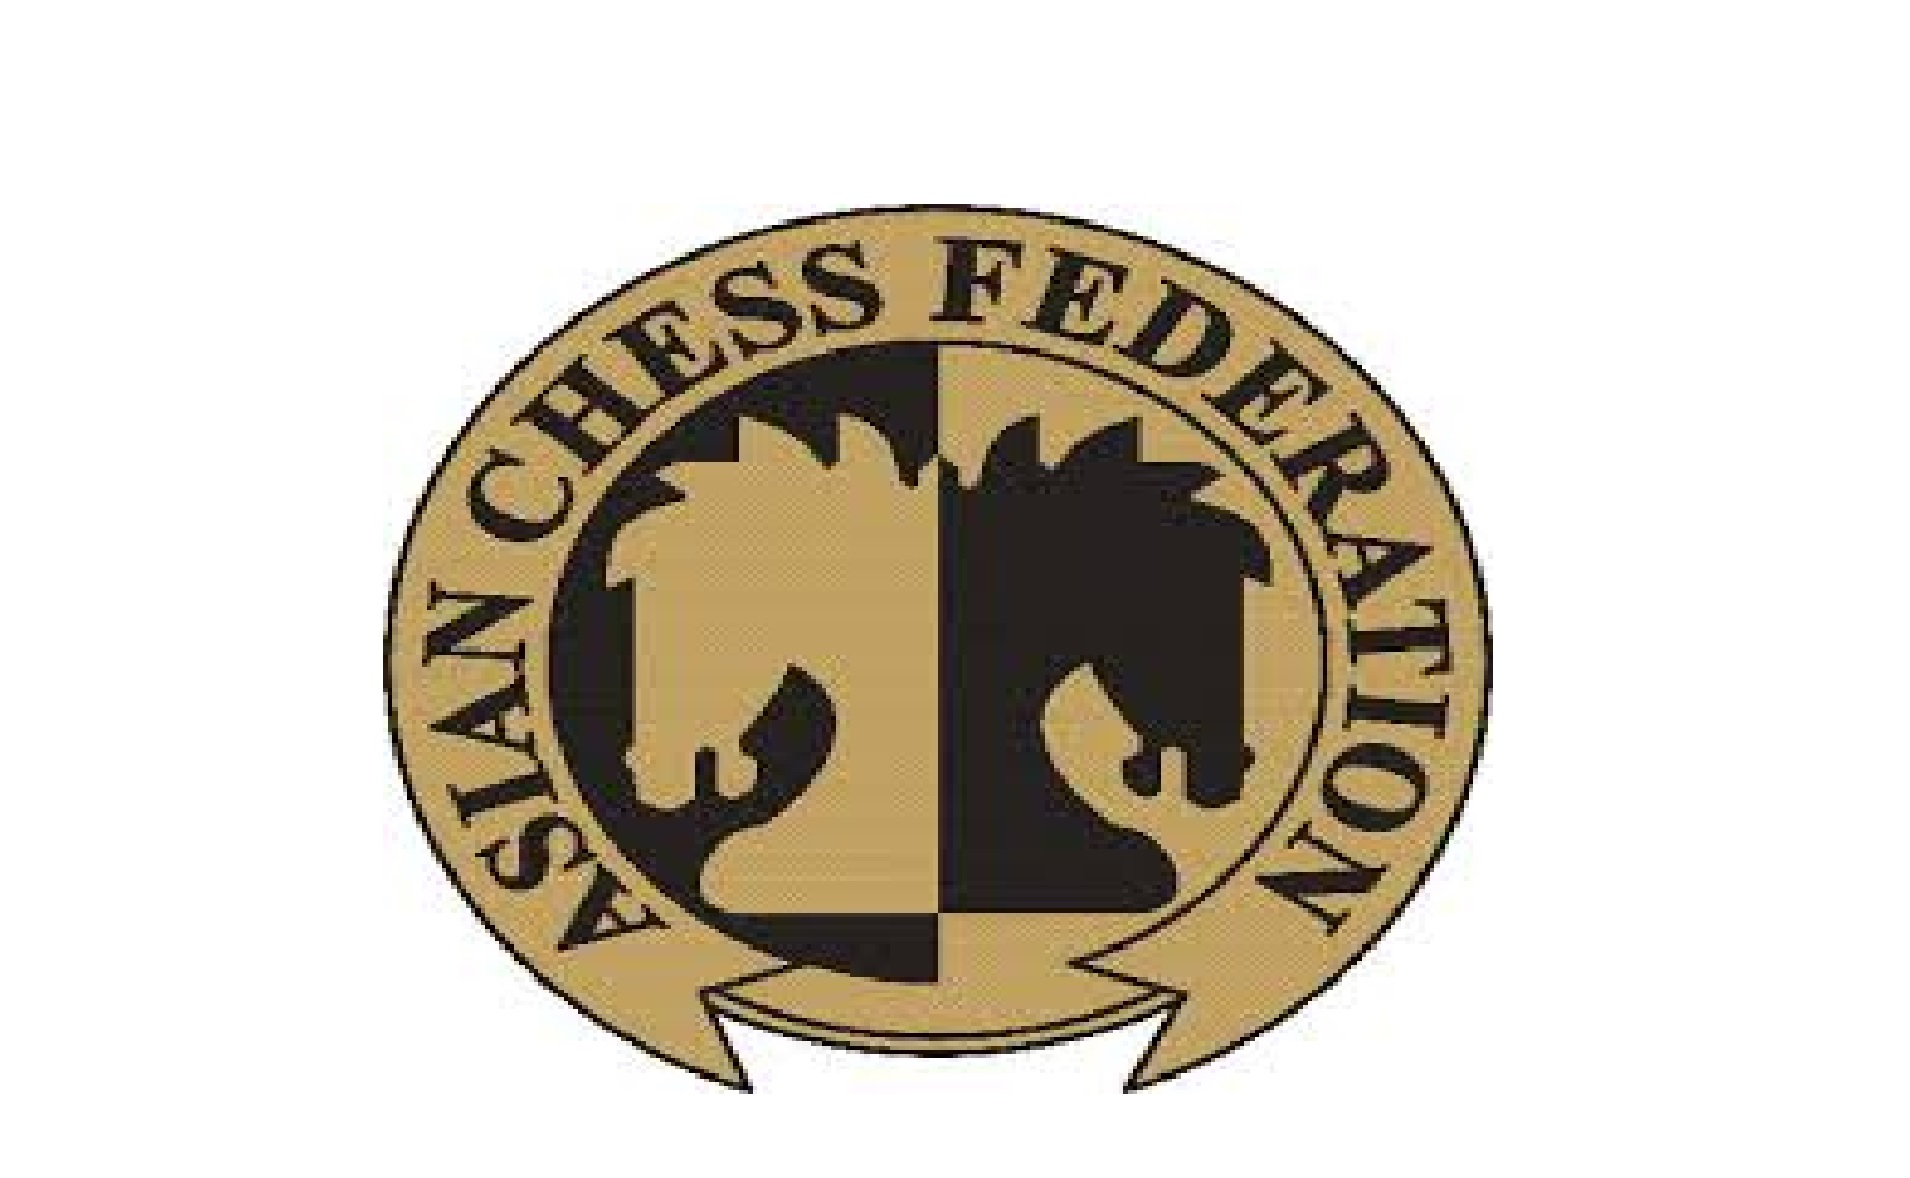 asian chess federation